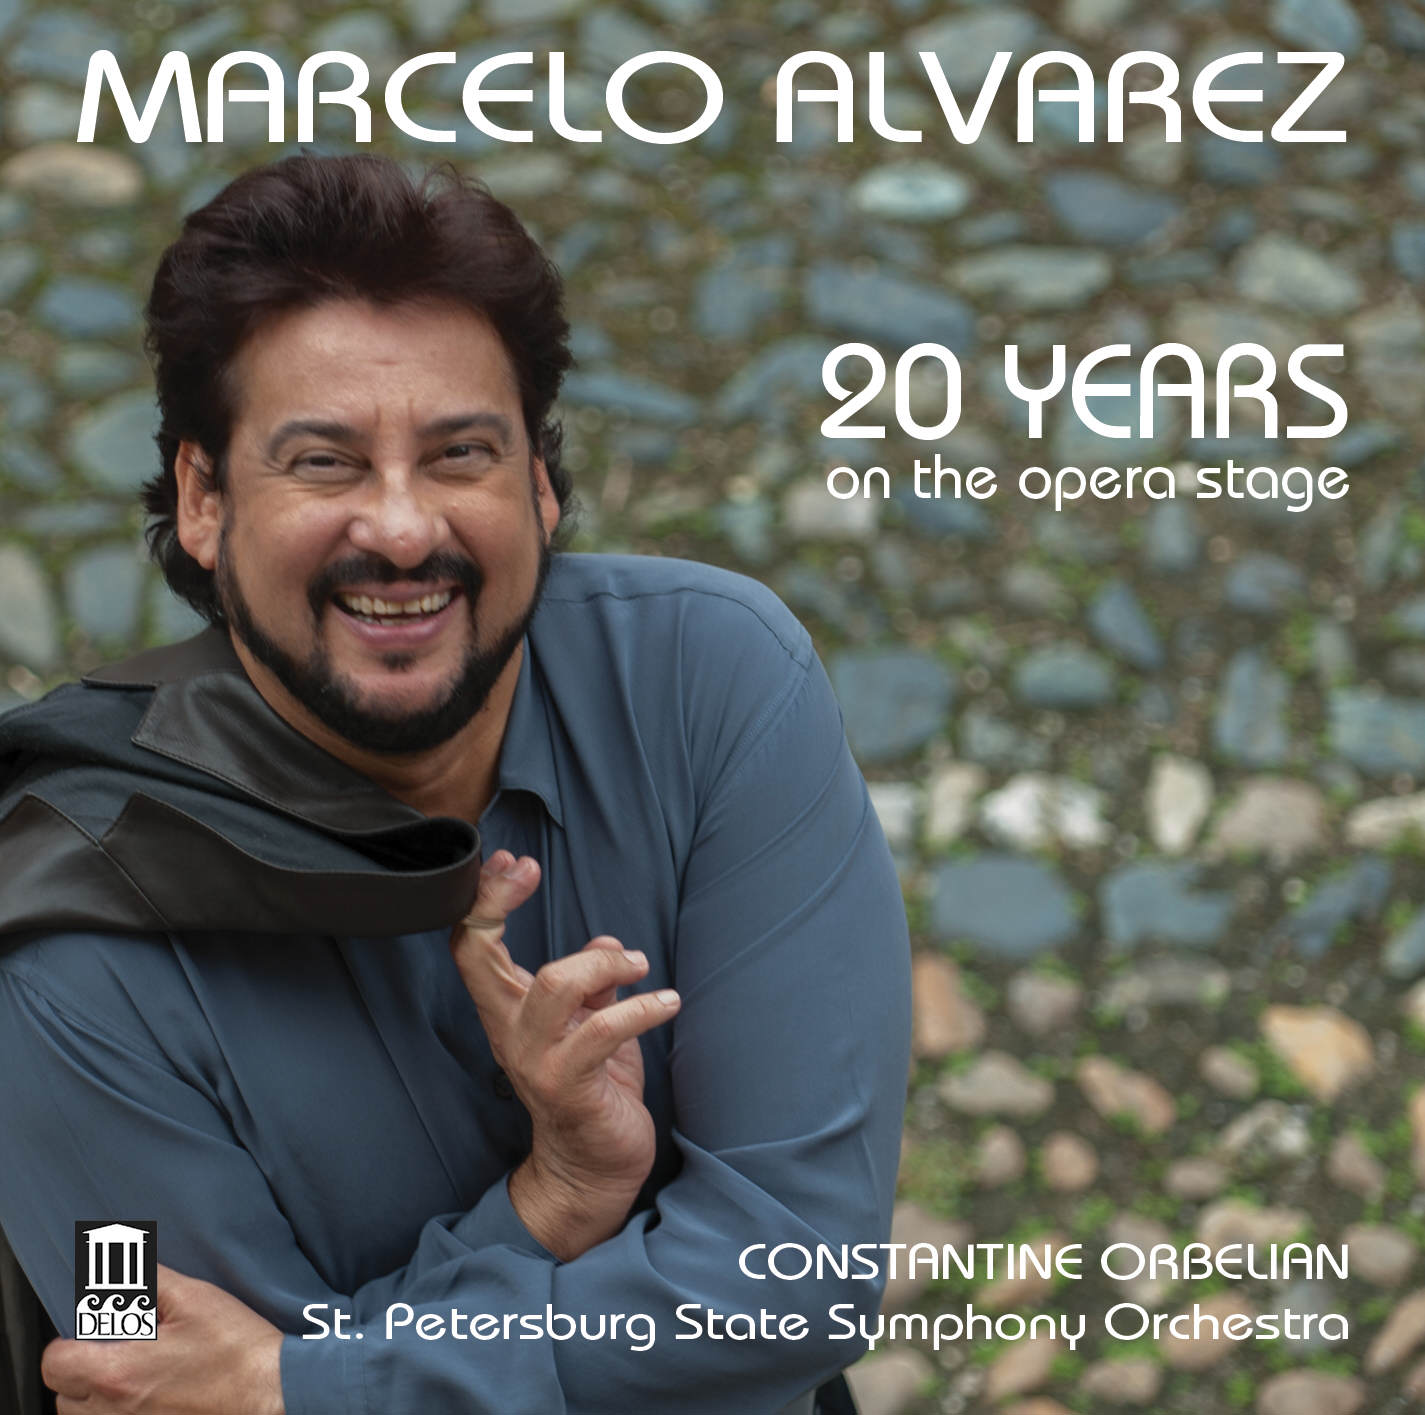 Marcelo Alvarez: 20 Years on the Opera Stage